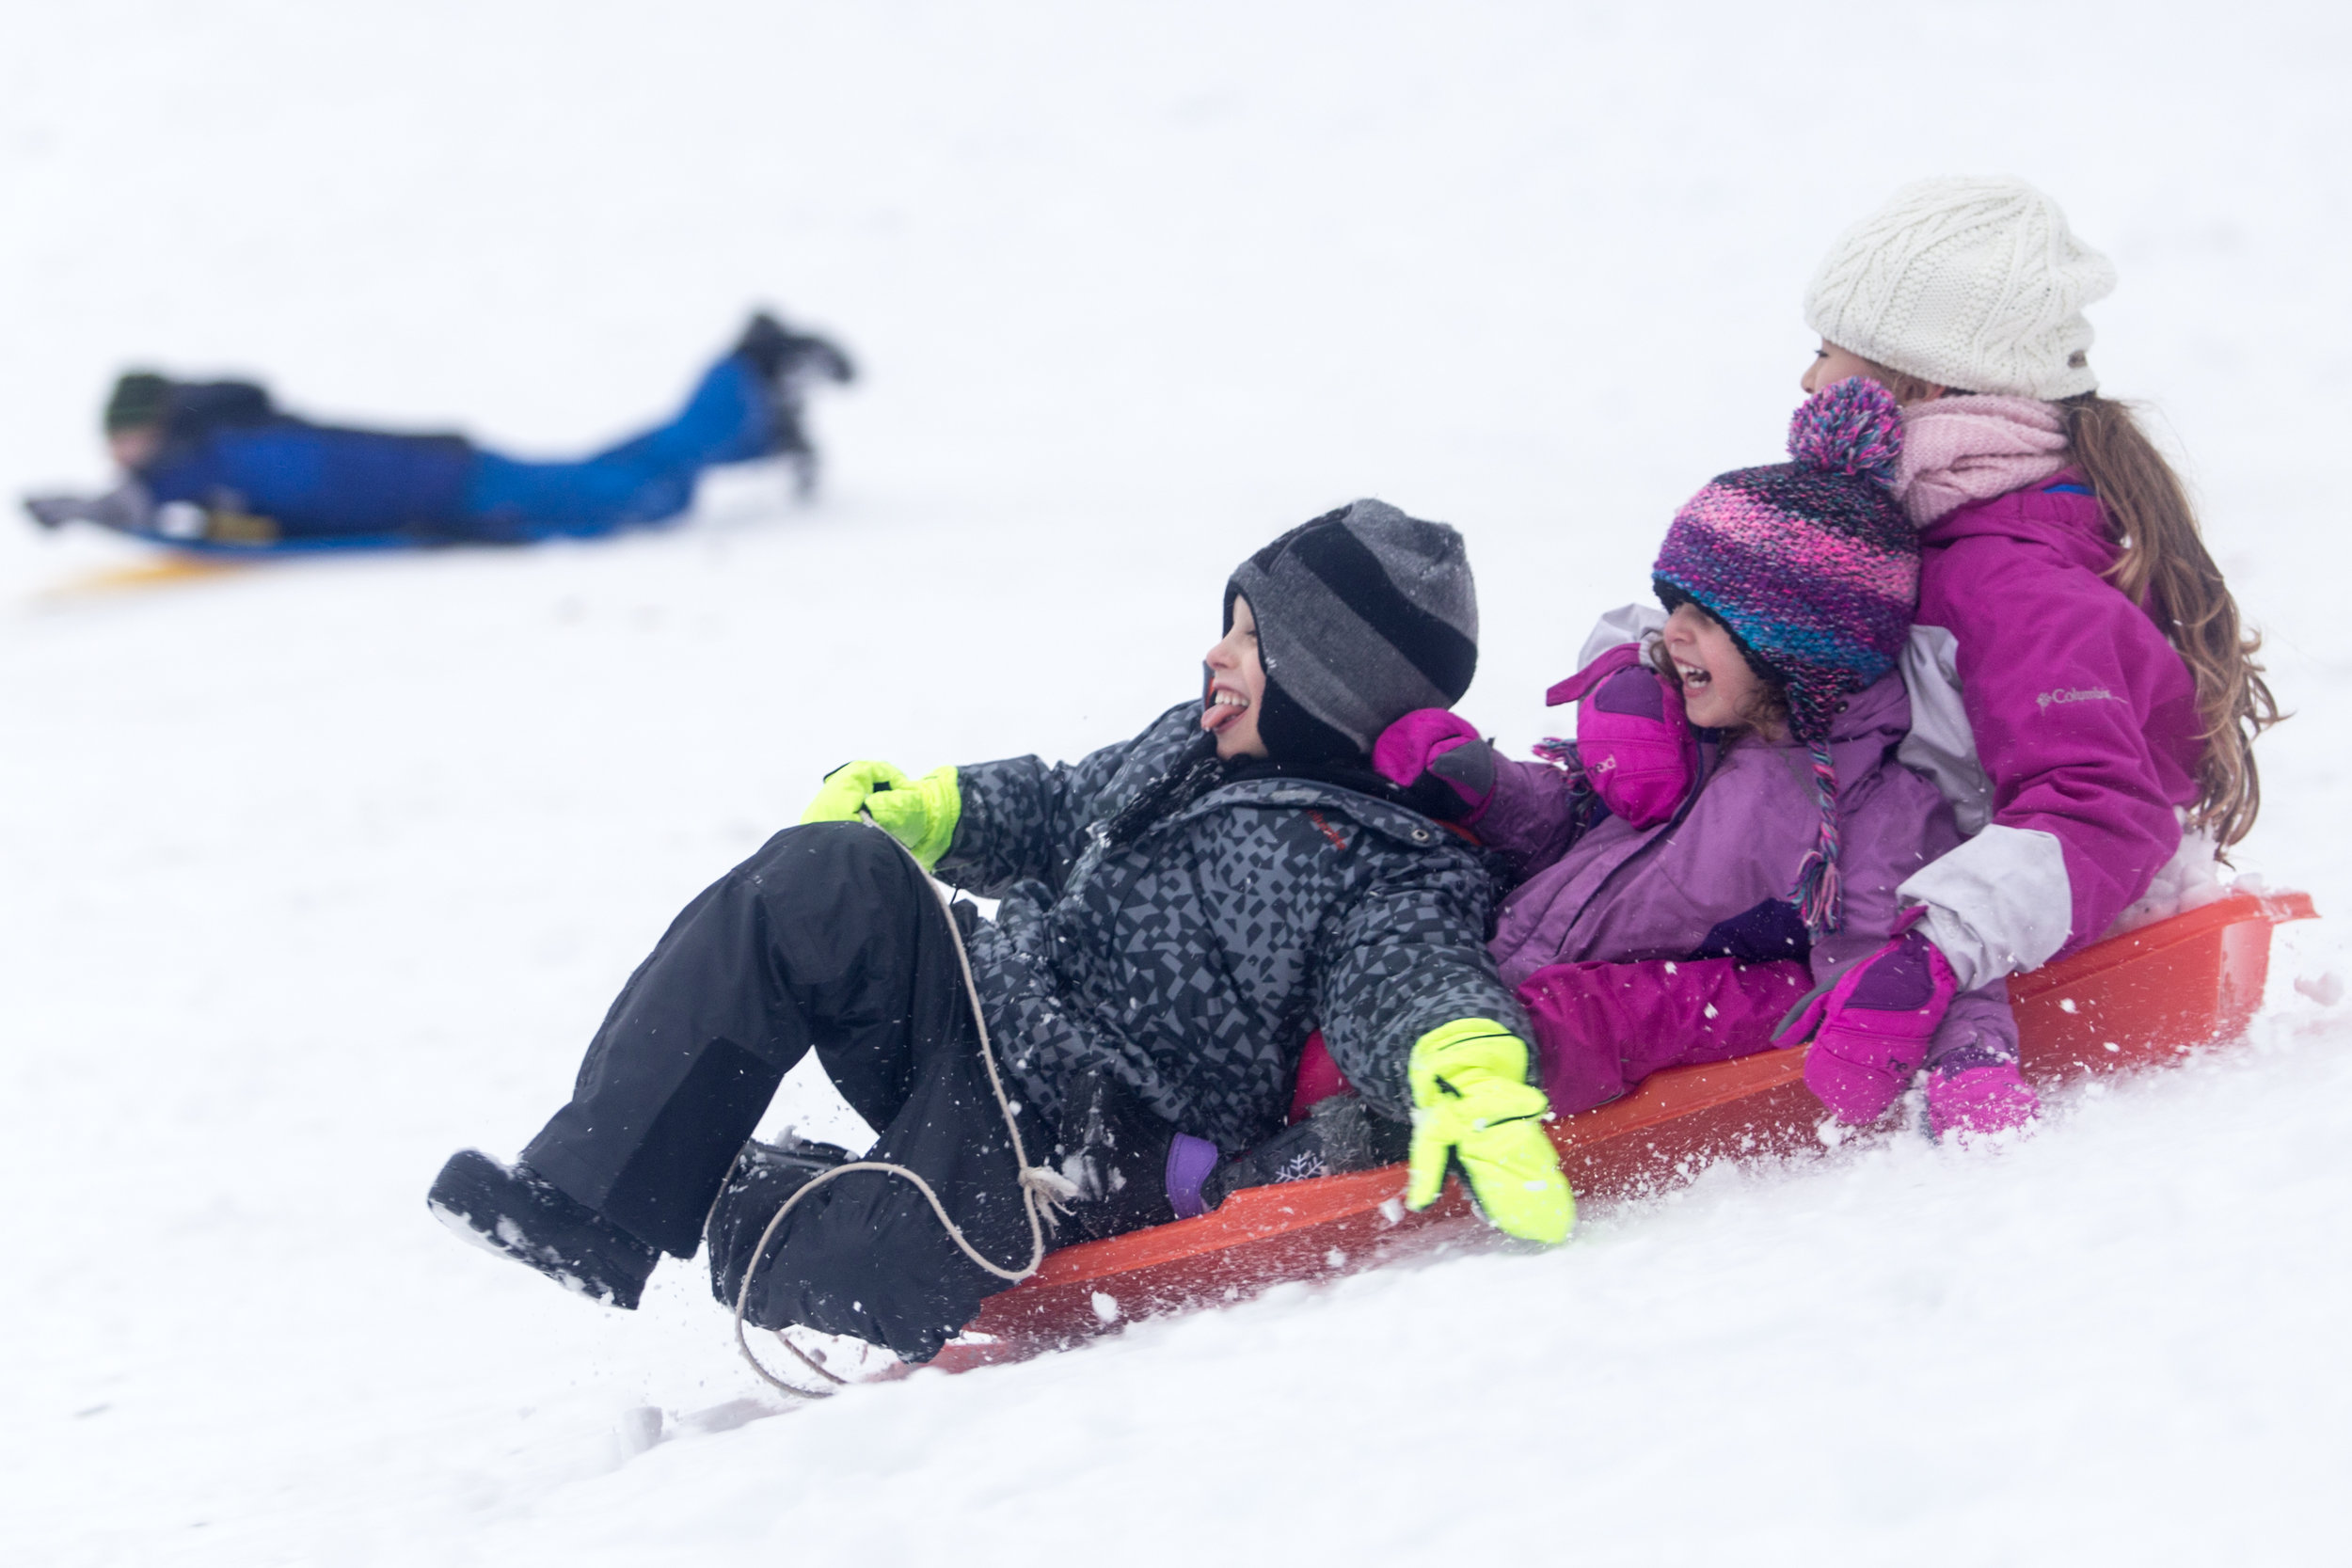 Siblings (from left) Yuval, 7,   Amit, 4, and Itay Gelbmab, 7, of Israel, sled down a hill in Amory Park, Brookline, Mass., Dec. 17, 2016, while enjoying their first New England winter since their family moved to Brookline this year.